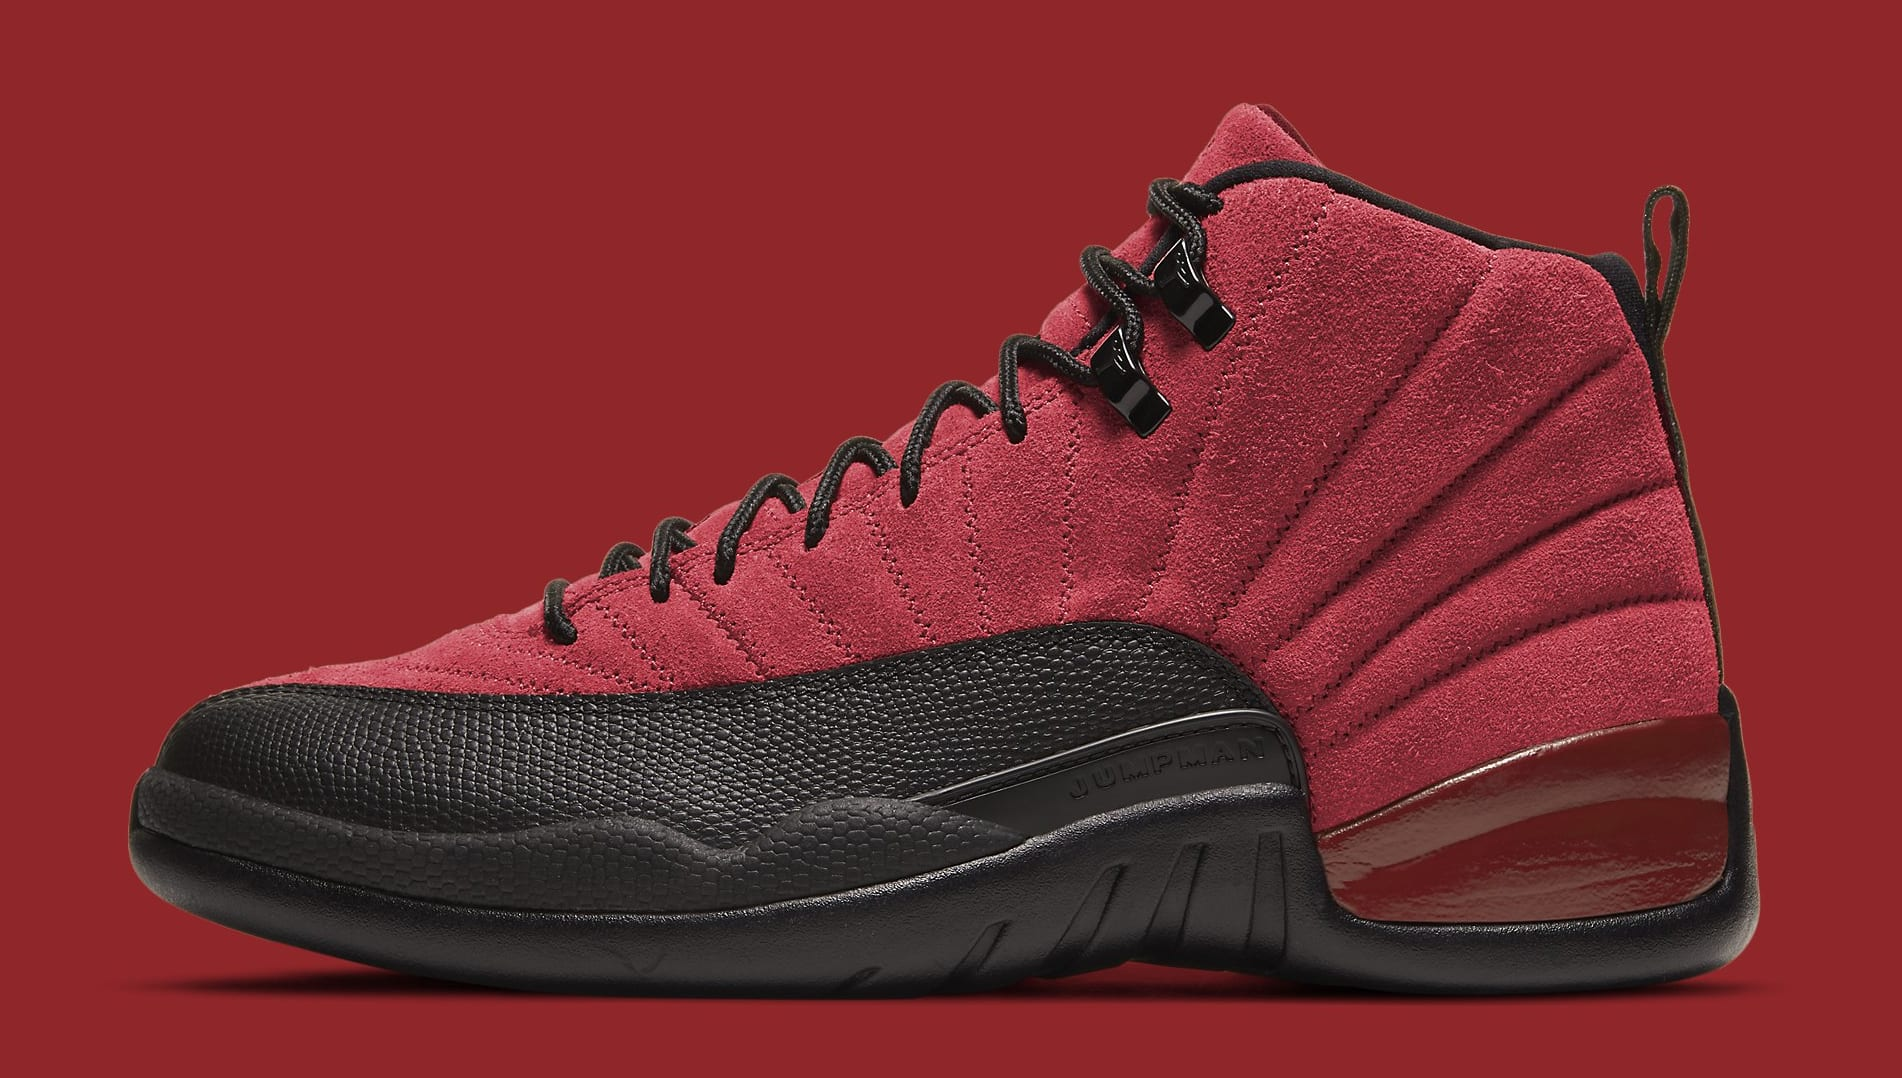 Air Jordan 12 Retro 'Reverse Flu Game' CT8013-602 Lateral